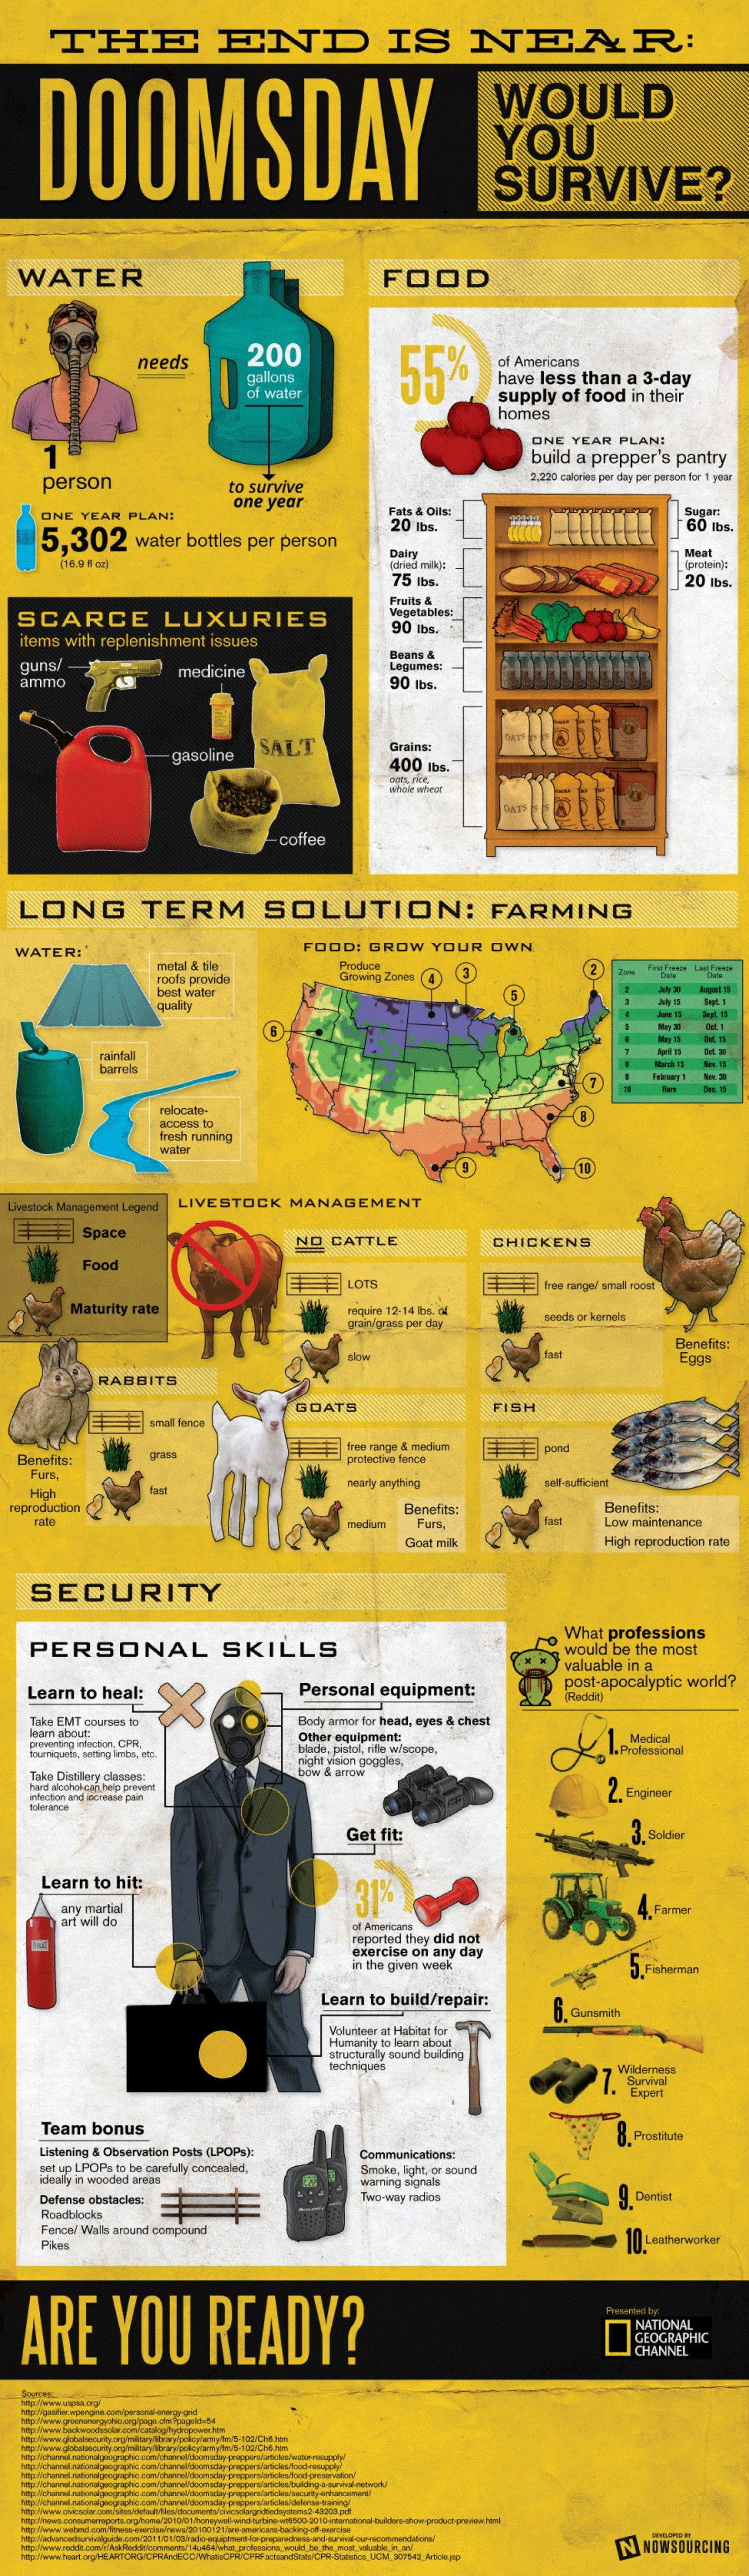 05 doomsday-would-you-survive-infographic_513fa0a7c185e_w1500